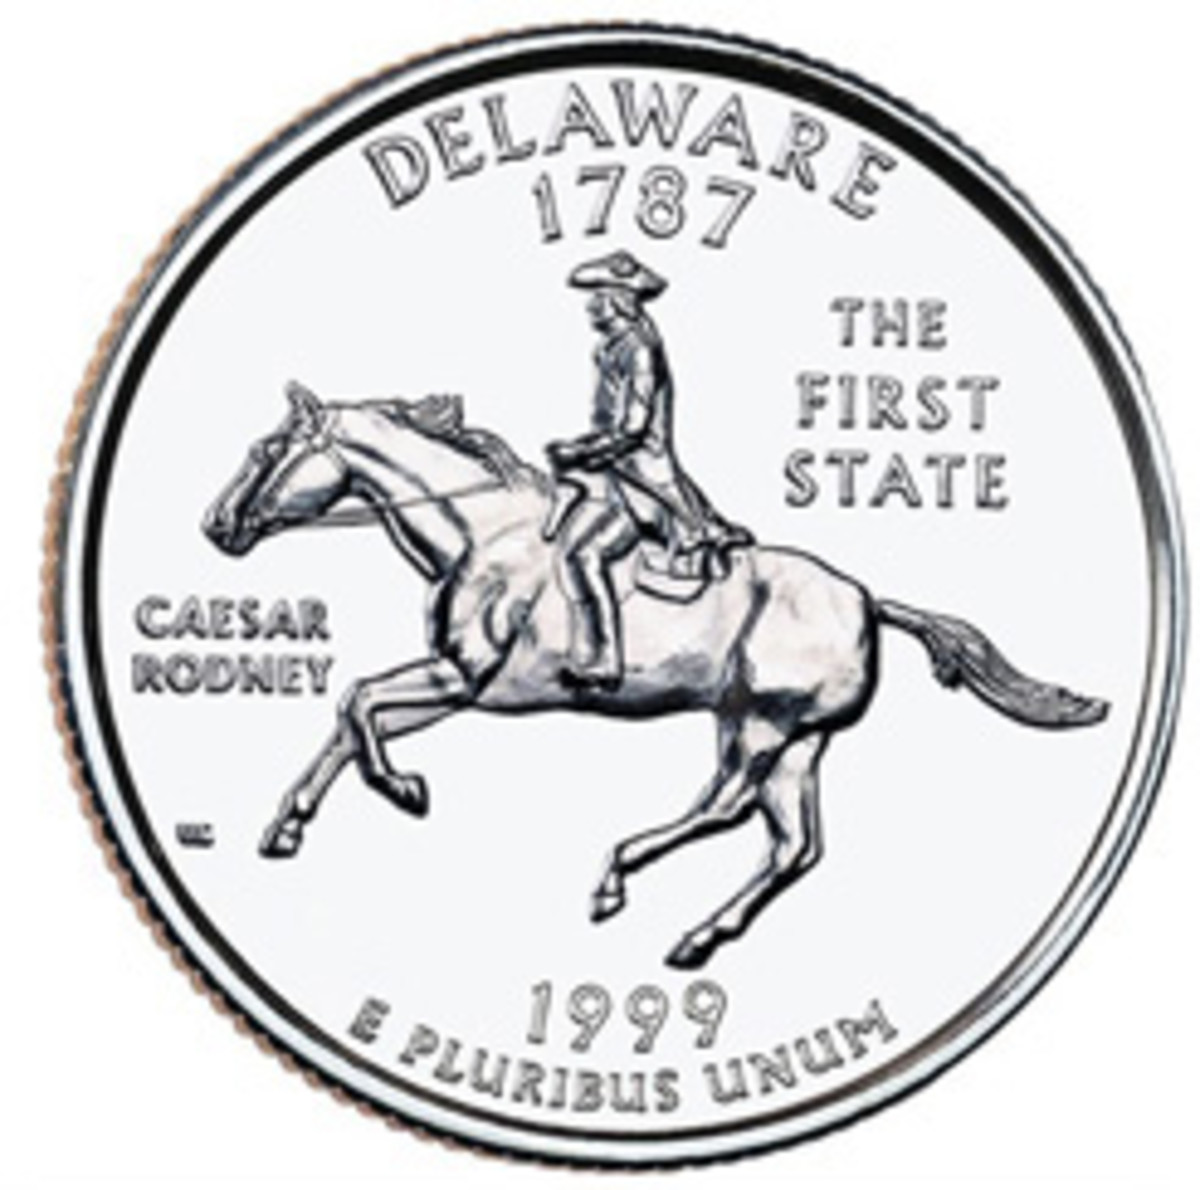 The Delaware Statehood quarter, part of the program recommended to the House Banking Committee by the author. (Image courtesy www.usacoinbook.com)